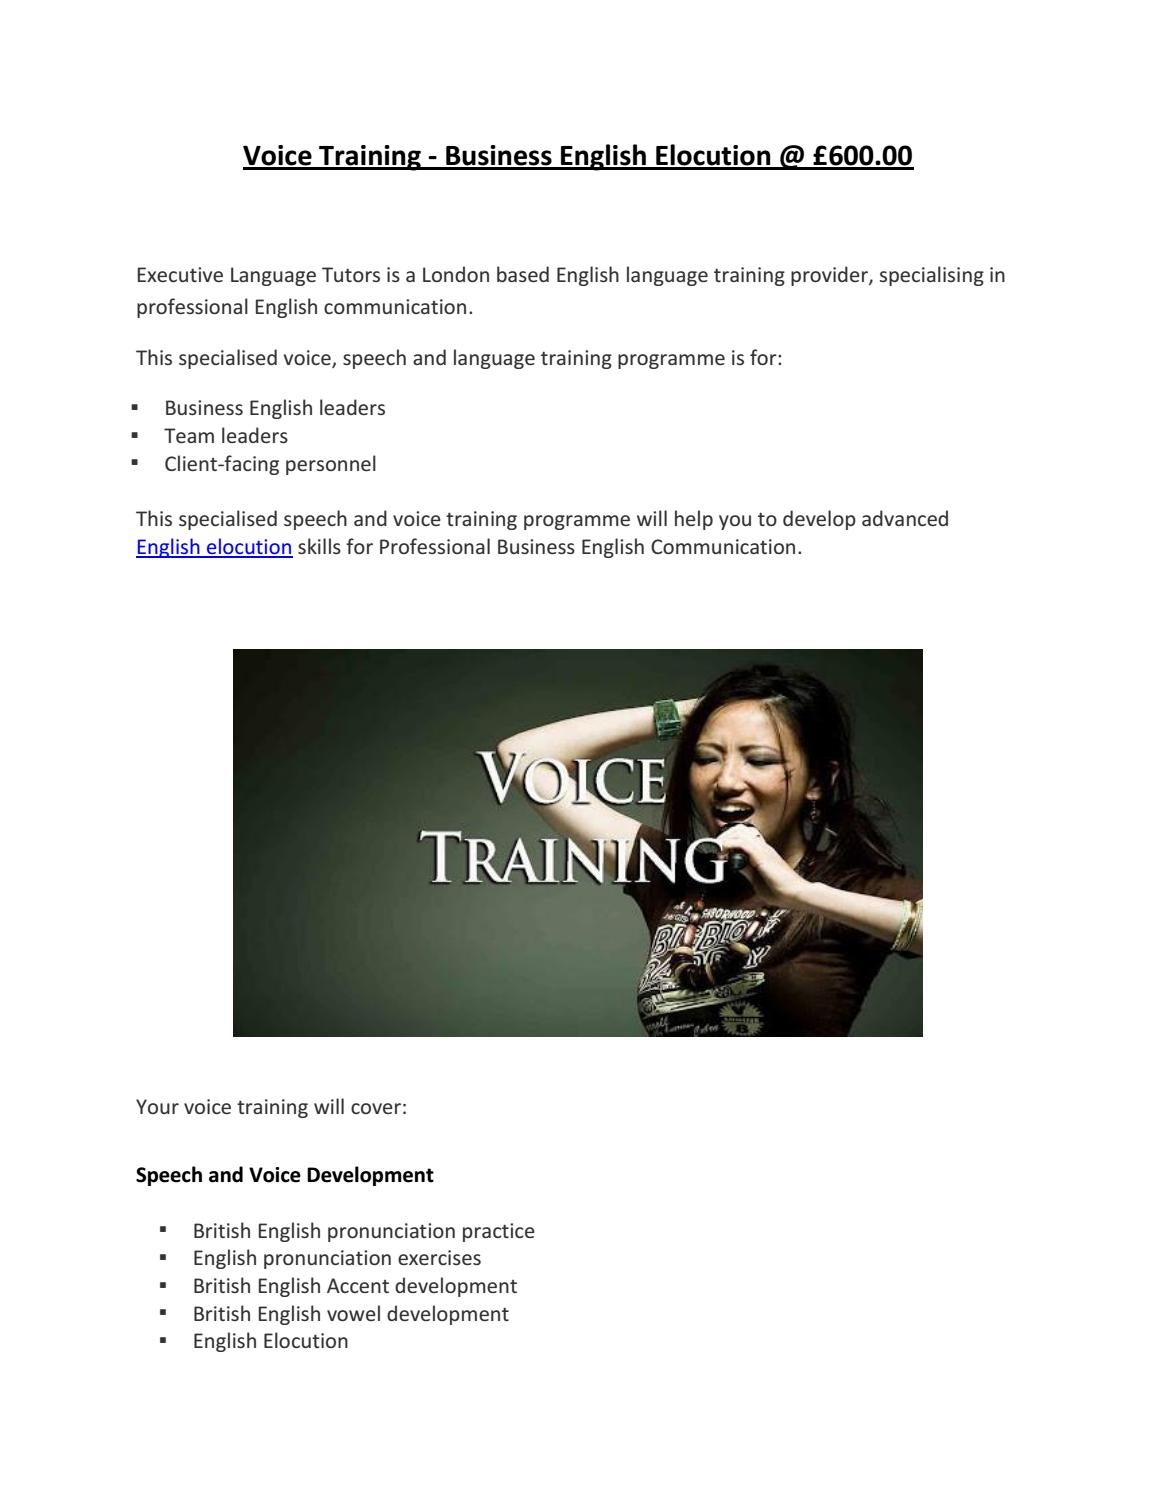 Voice training business english elocution @ £600 00 by Vicky Carney